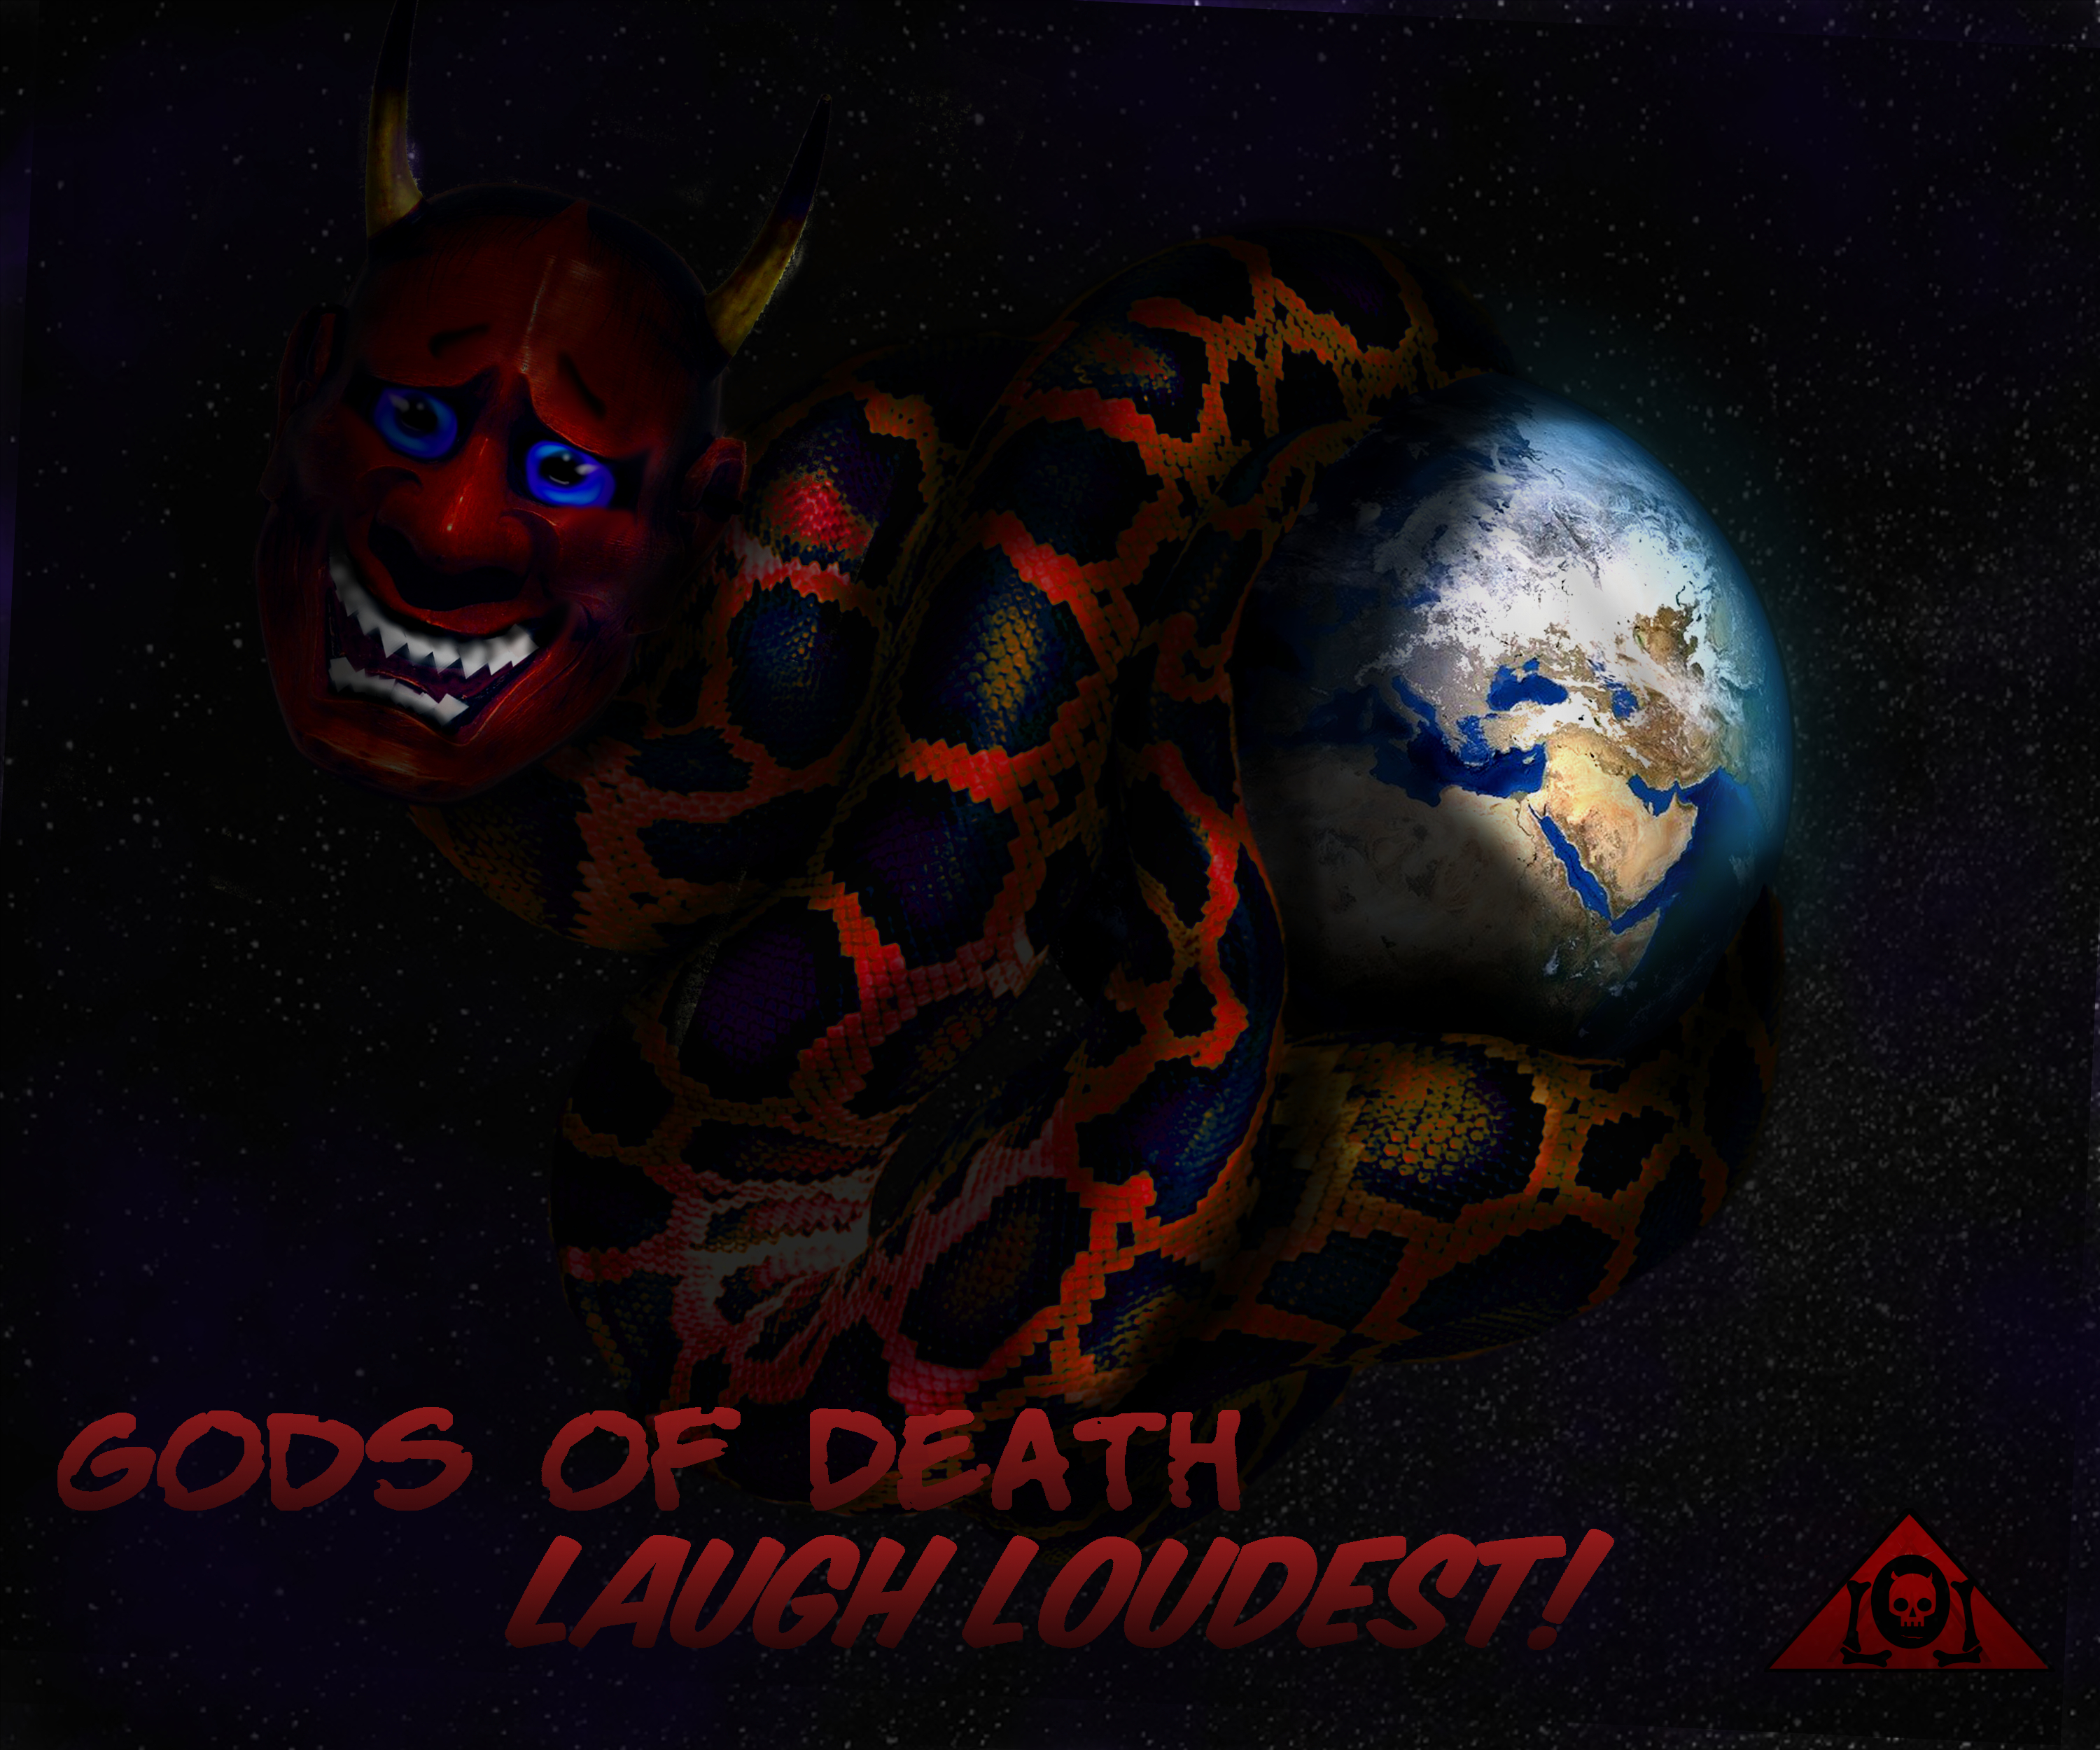 Gods of Death Laugh Loudest Lyrics Sheet